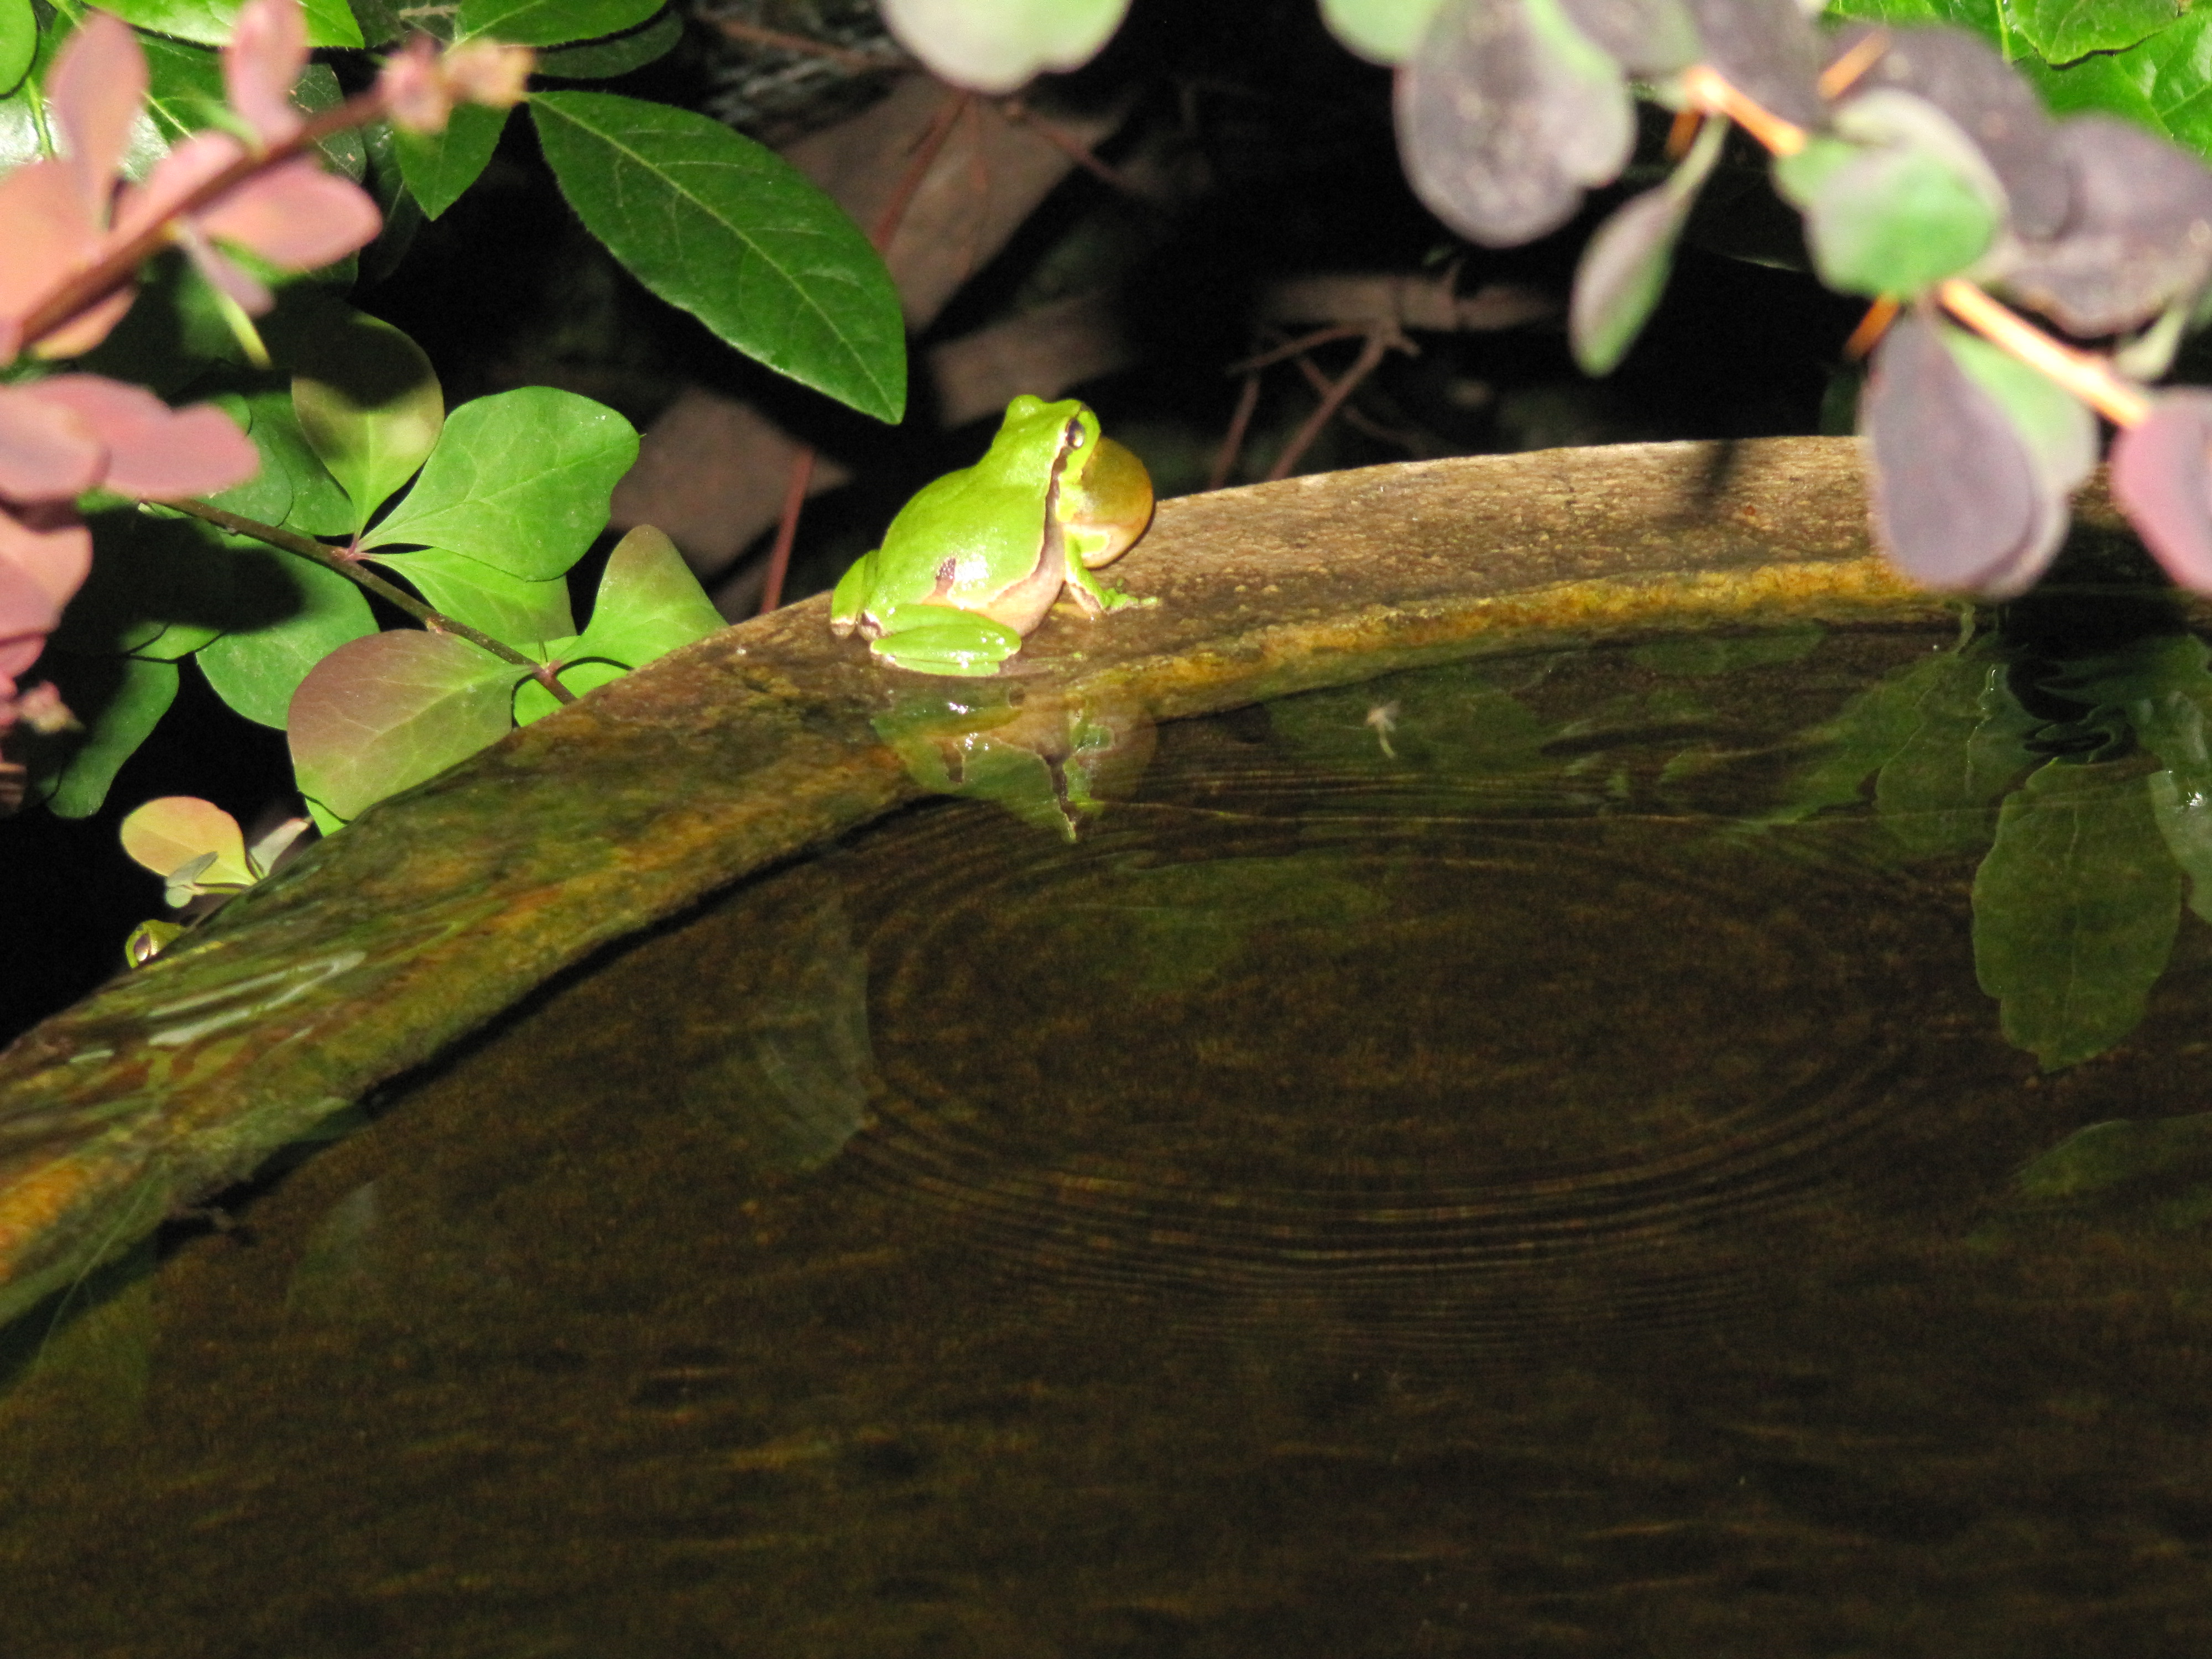 Tree frog in full song on the rim of the water feature